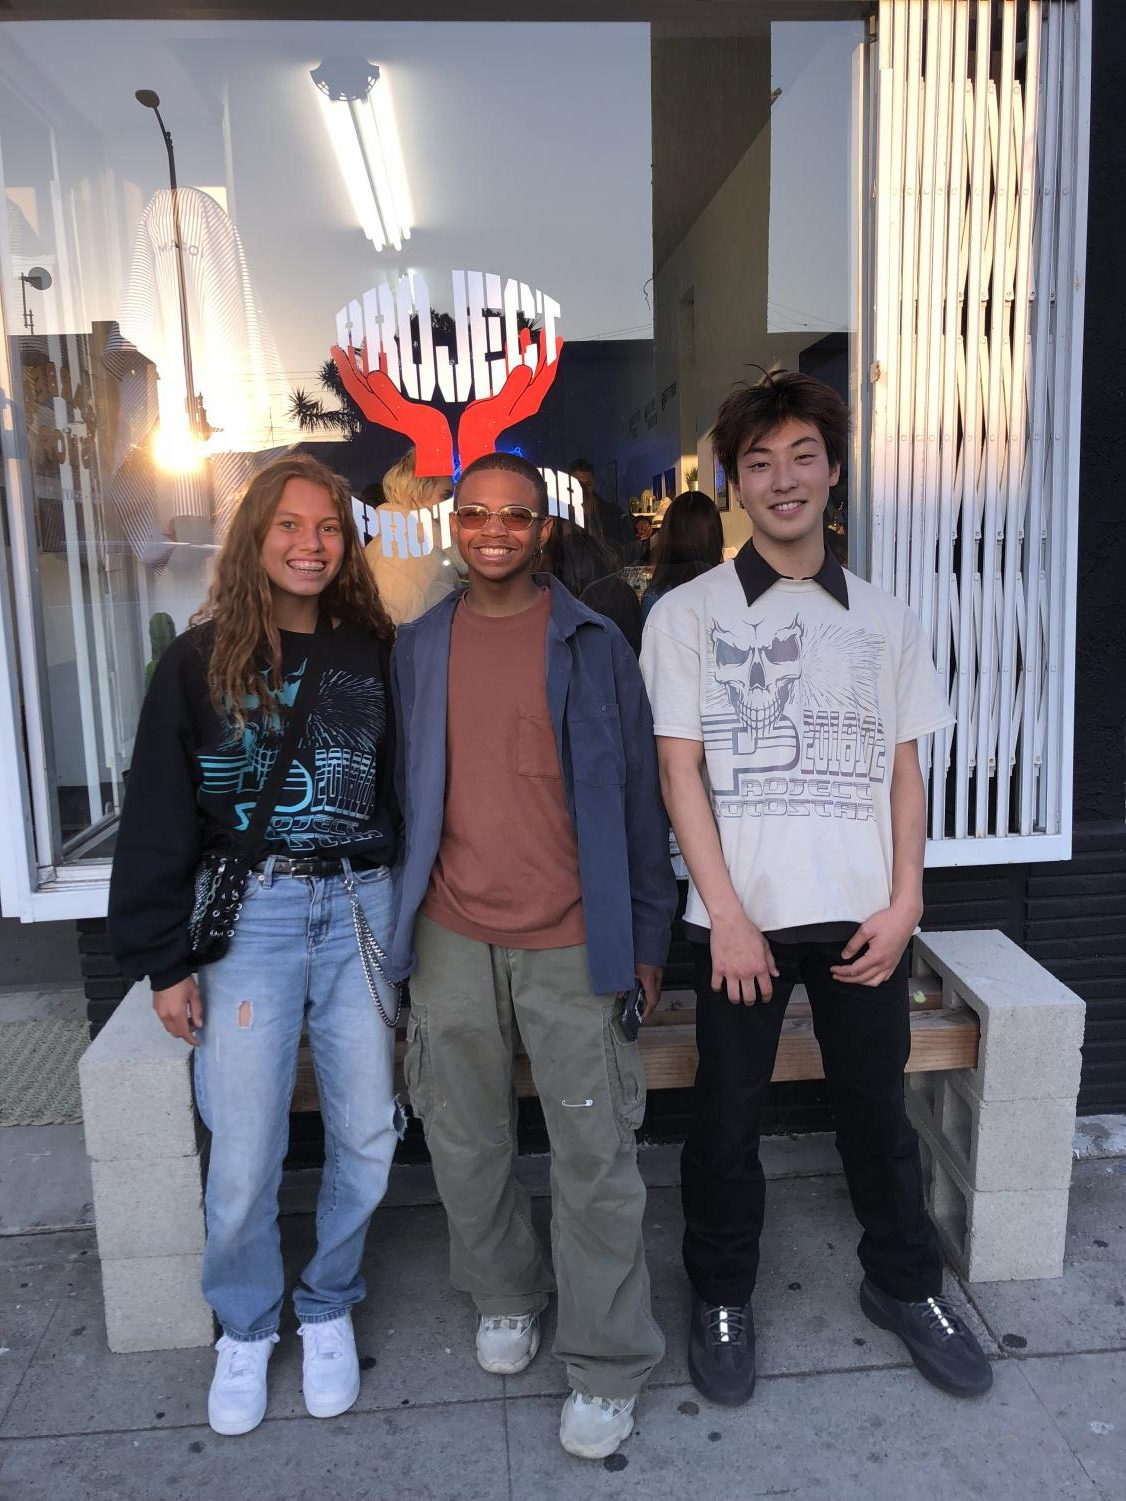 Designer Antonio Finamore (middle) along with models Cailee Pupecki and Shu Watanabe posing in front of the pop up shop